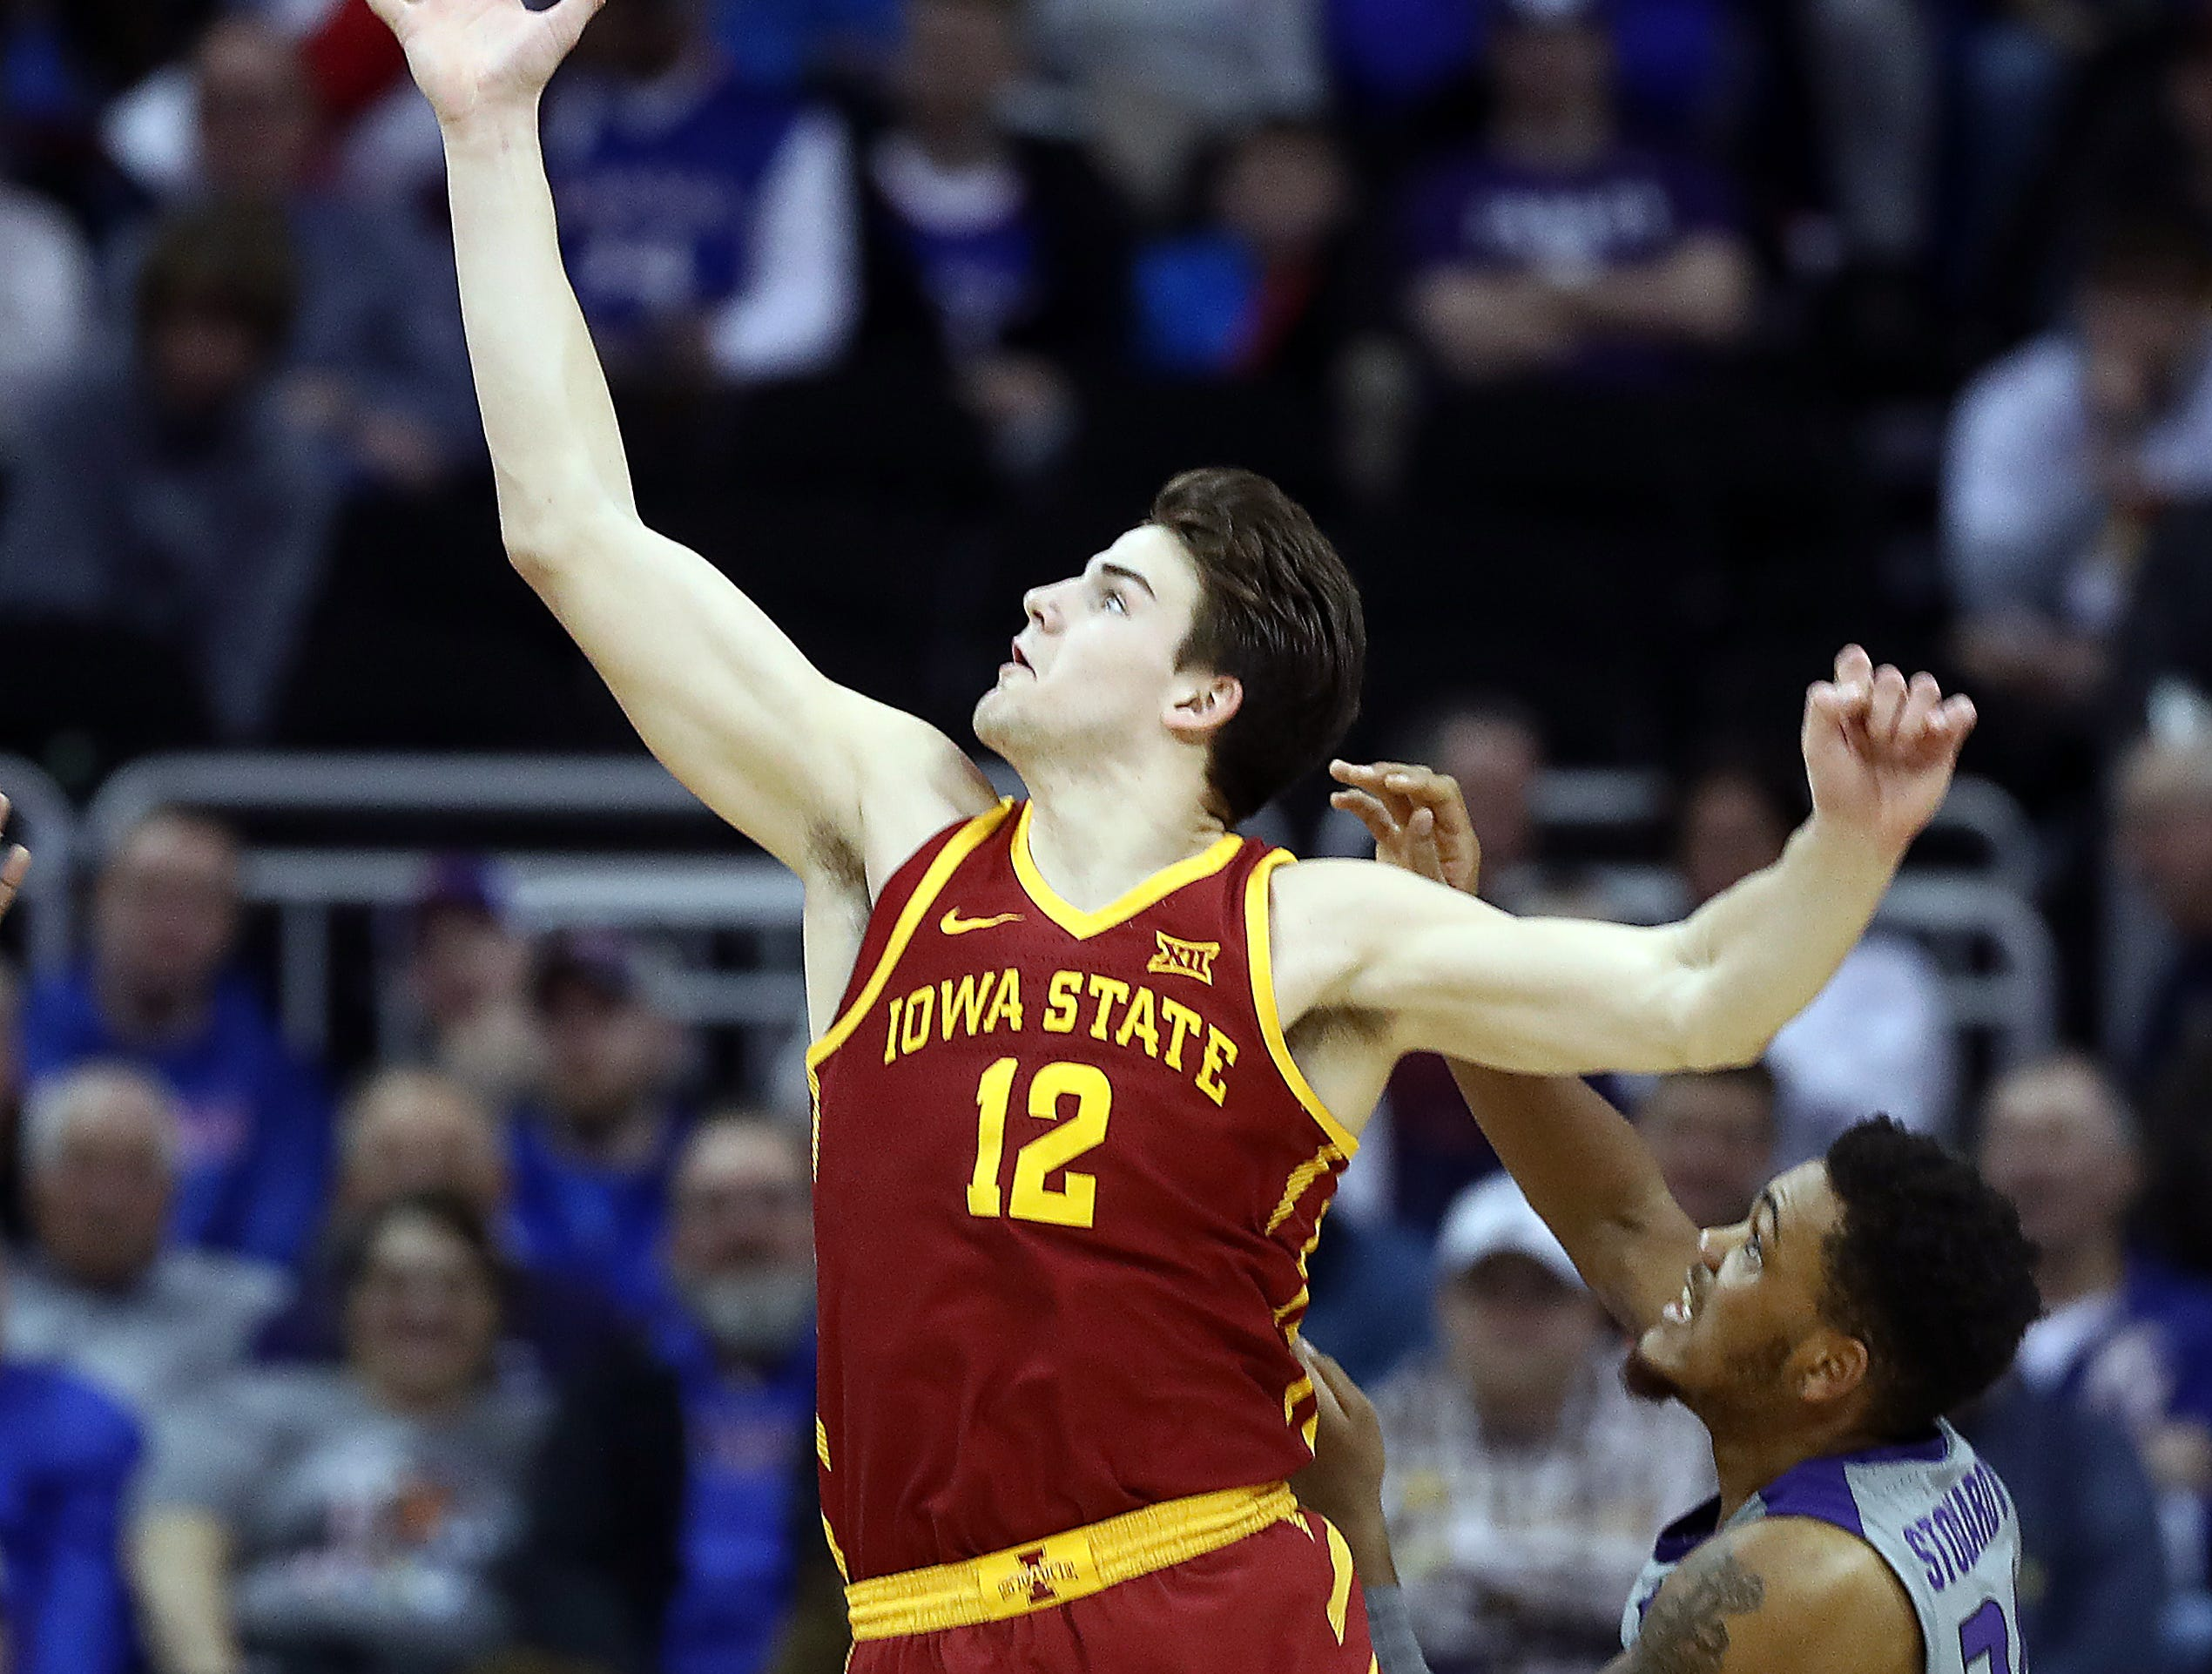 KANSAS CITY, MISSOURI - MARCH 15:  Michael Jacobson #12 of the Iowa State Cyclones reaches for a rebound as Levi Stockard III #34 of the Kansas State Wildcats defends during the semifinal game of the Big 12 Basketball Tournament at Sprint Center on March 15, 2019 in Kansas City, Missouri. (Photo by Jamie Squire/Getty Images)